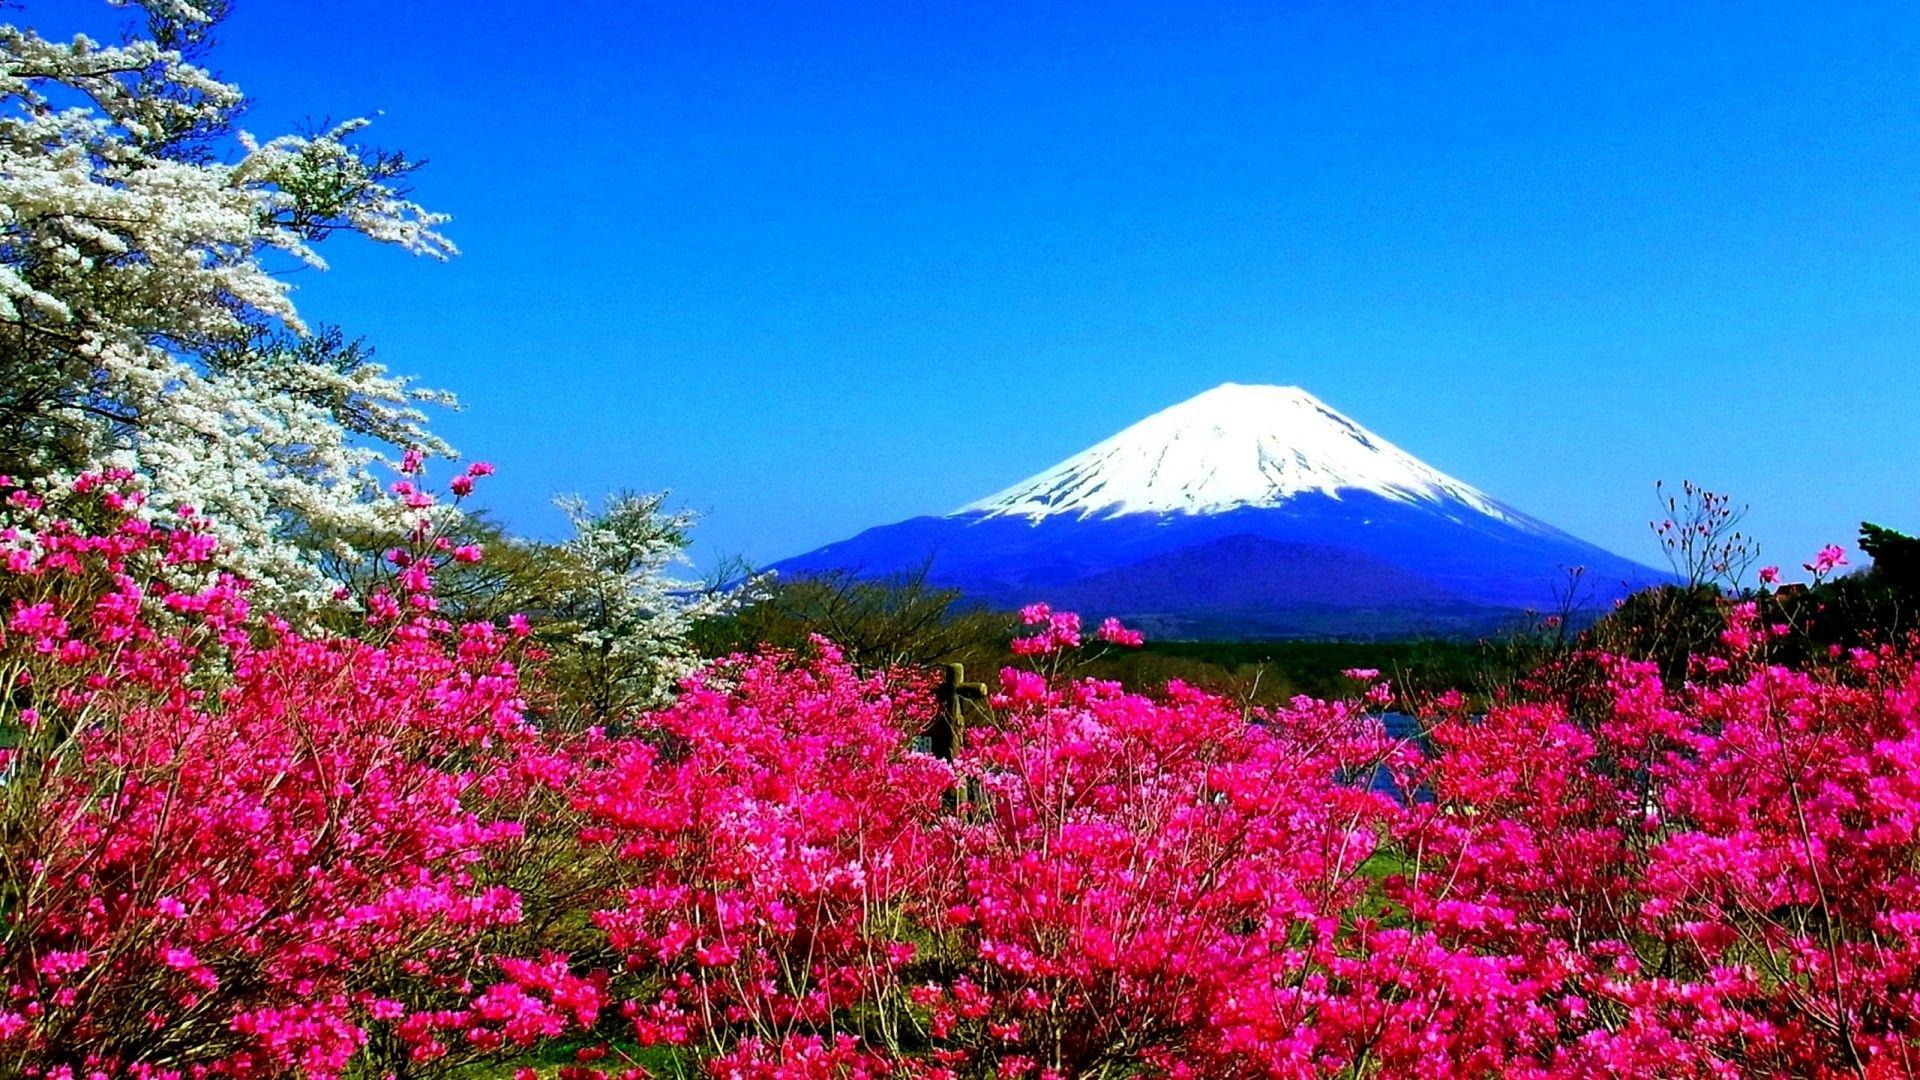 Spring Mountain Flowers Japan Fuji Nature Hd Wallpapers 23638